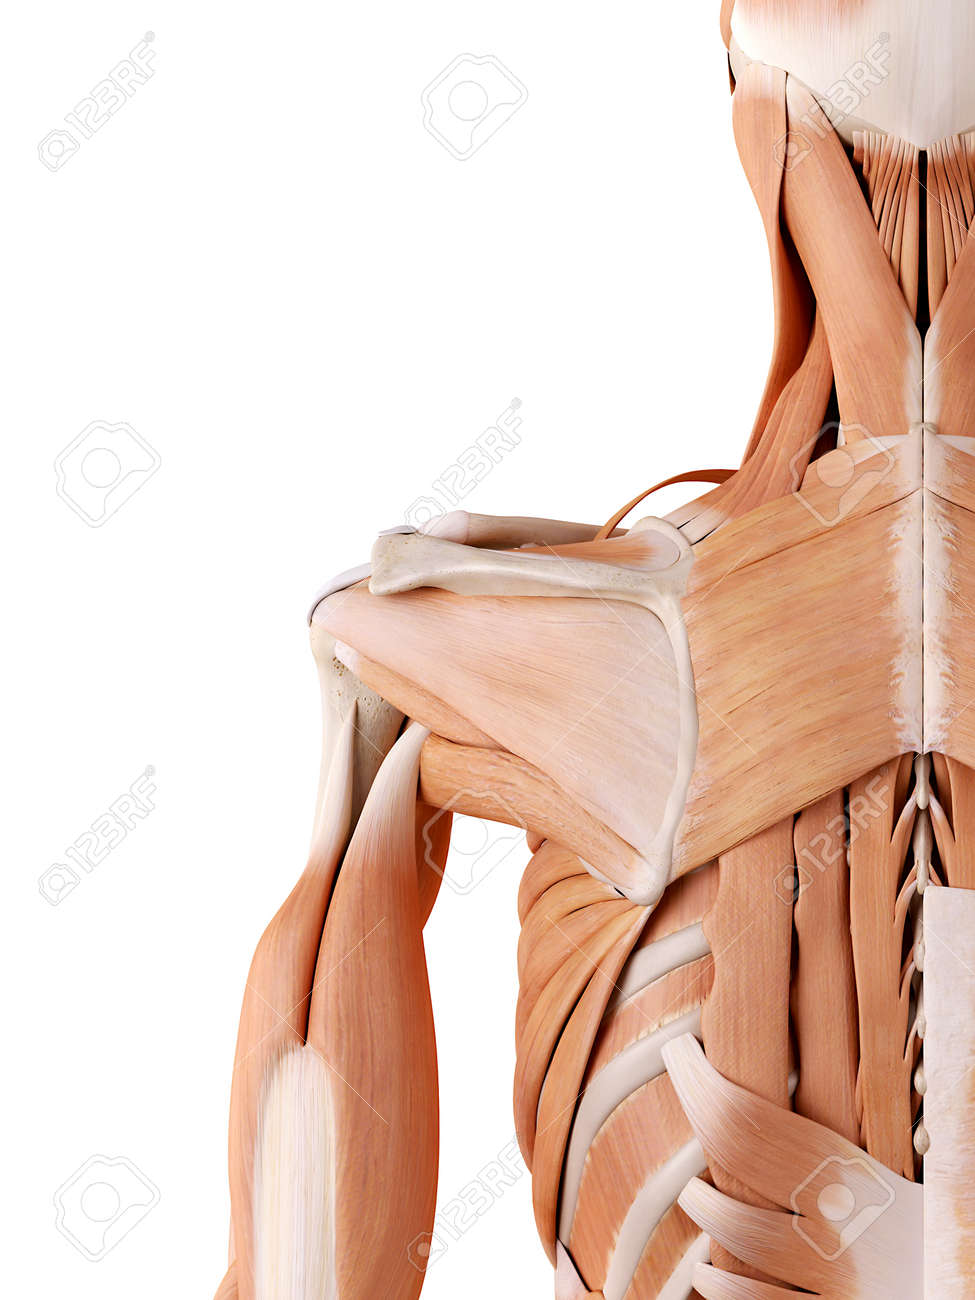 Medically Accurate Anatomy Illustration - Shoulder Muscles Stock ...